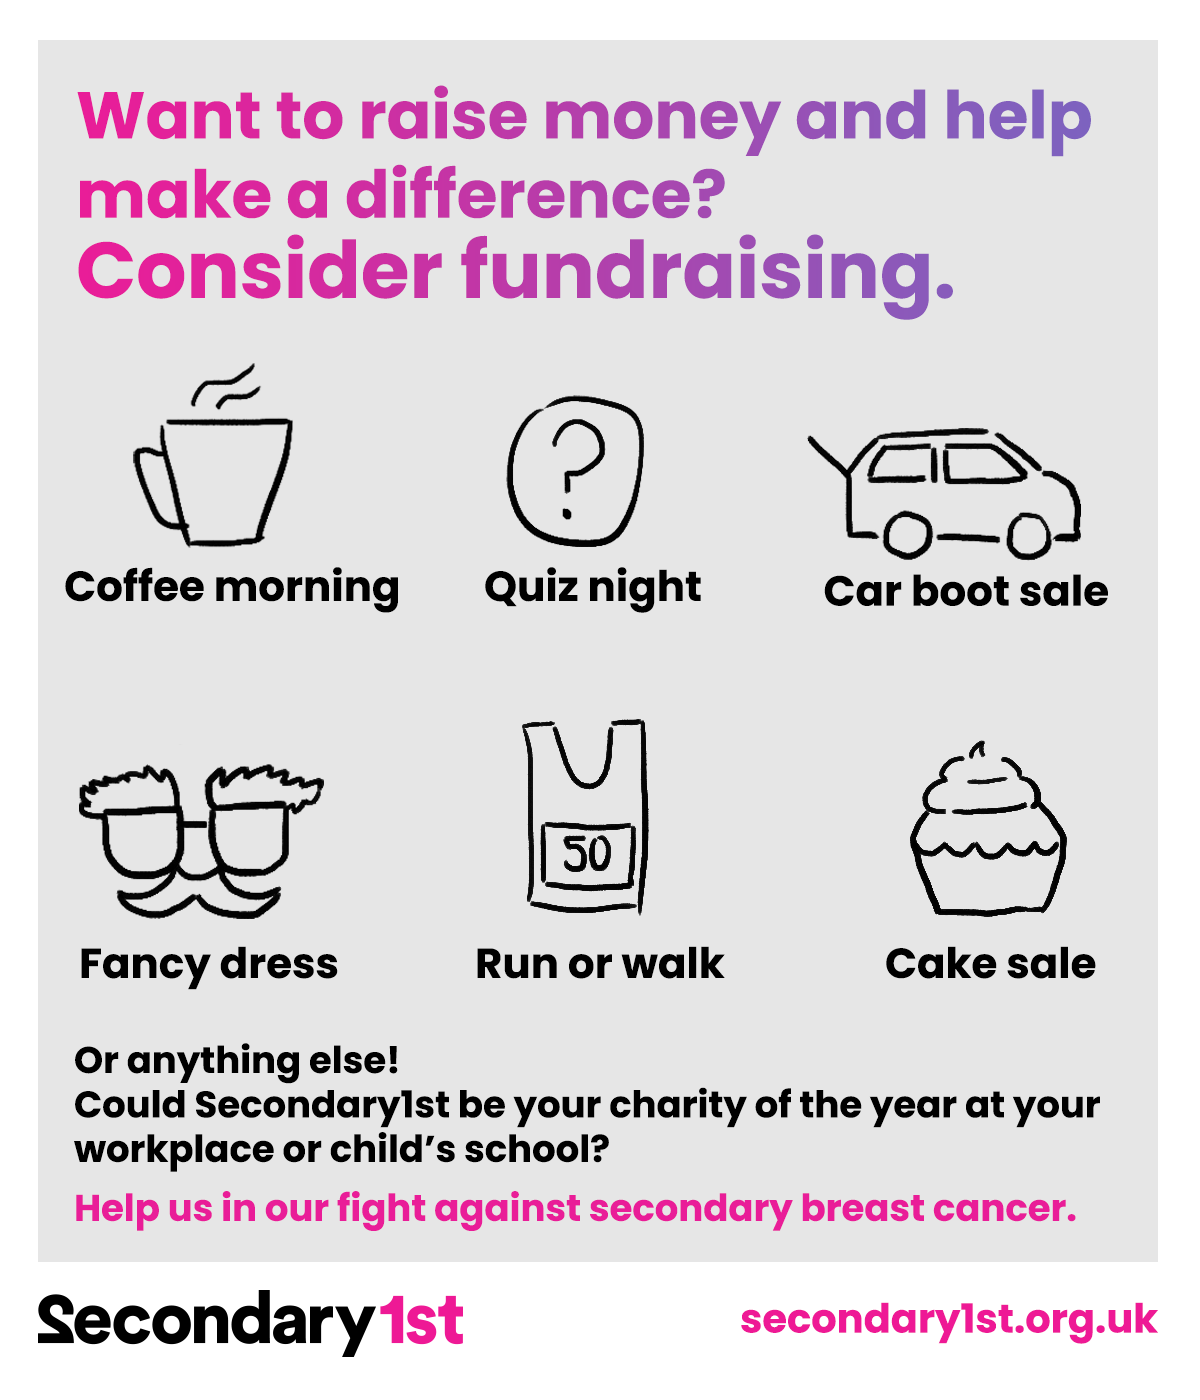 fundraising-final.png